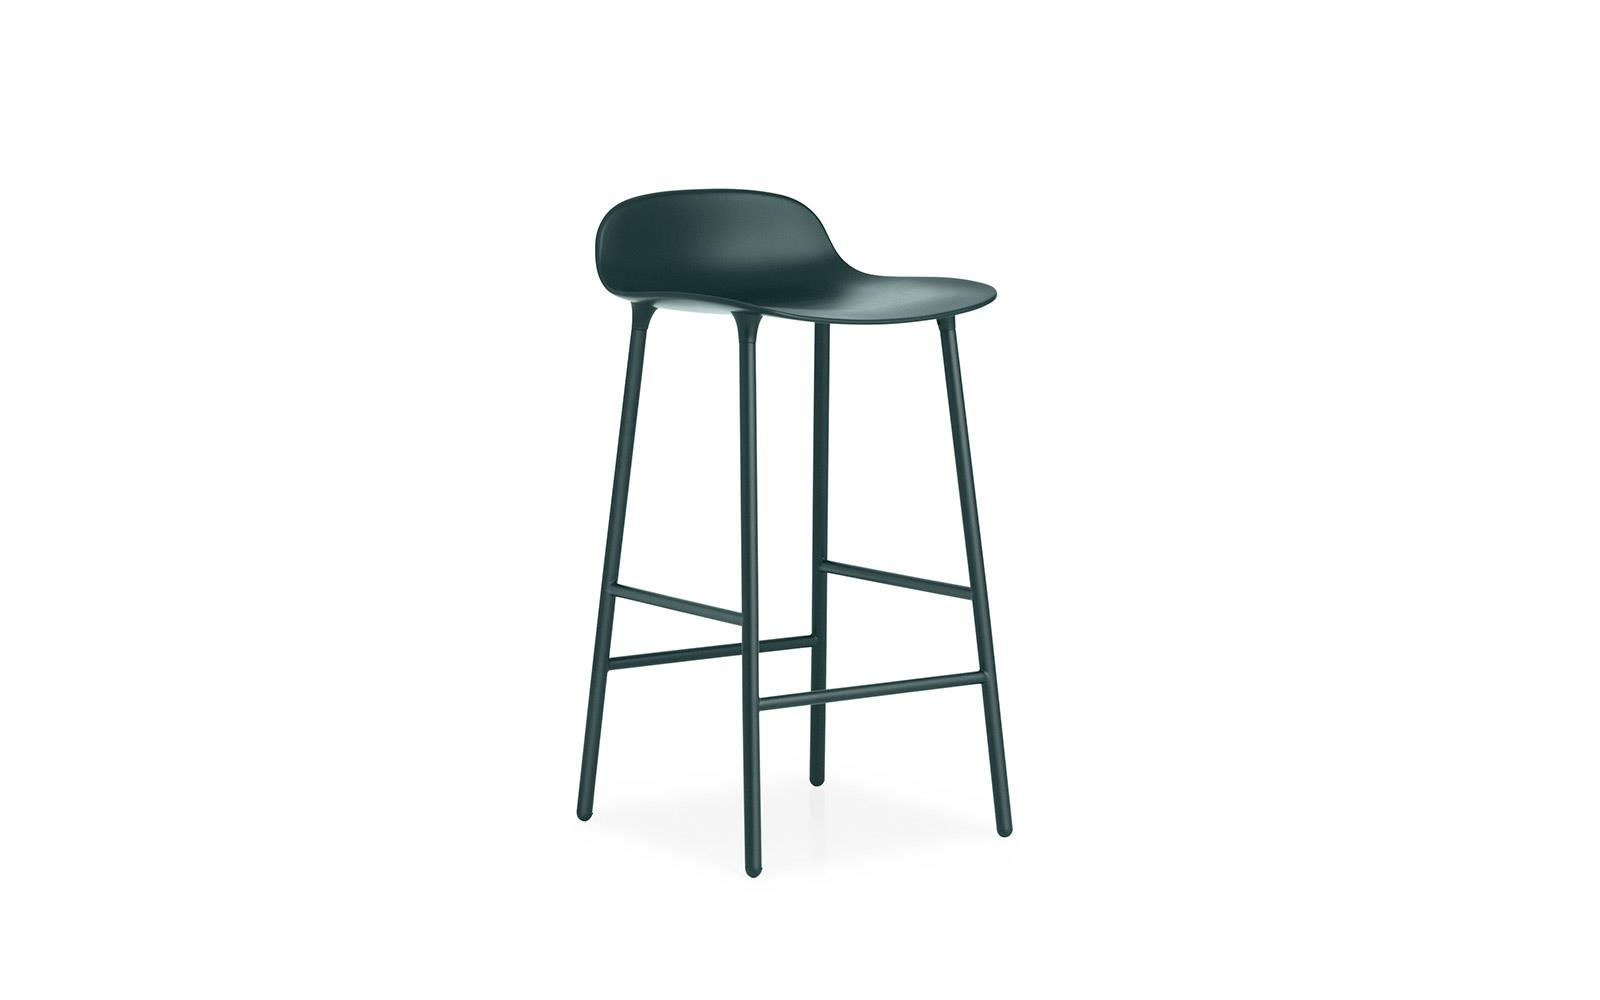 73efc7df6c6a Form Barstool | Molded plastic shell chair with steel legs